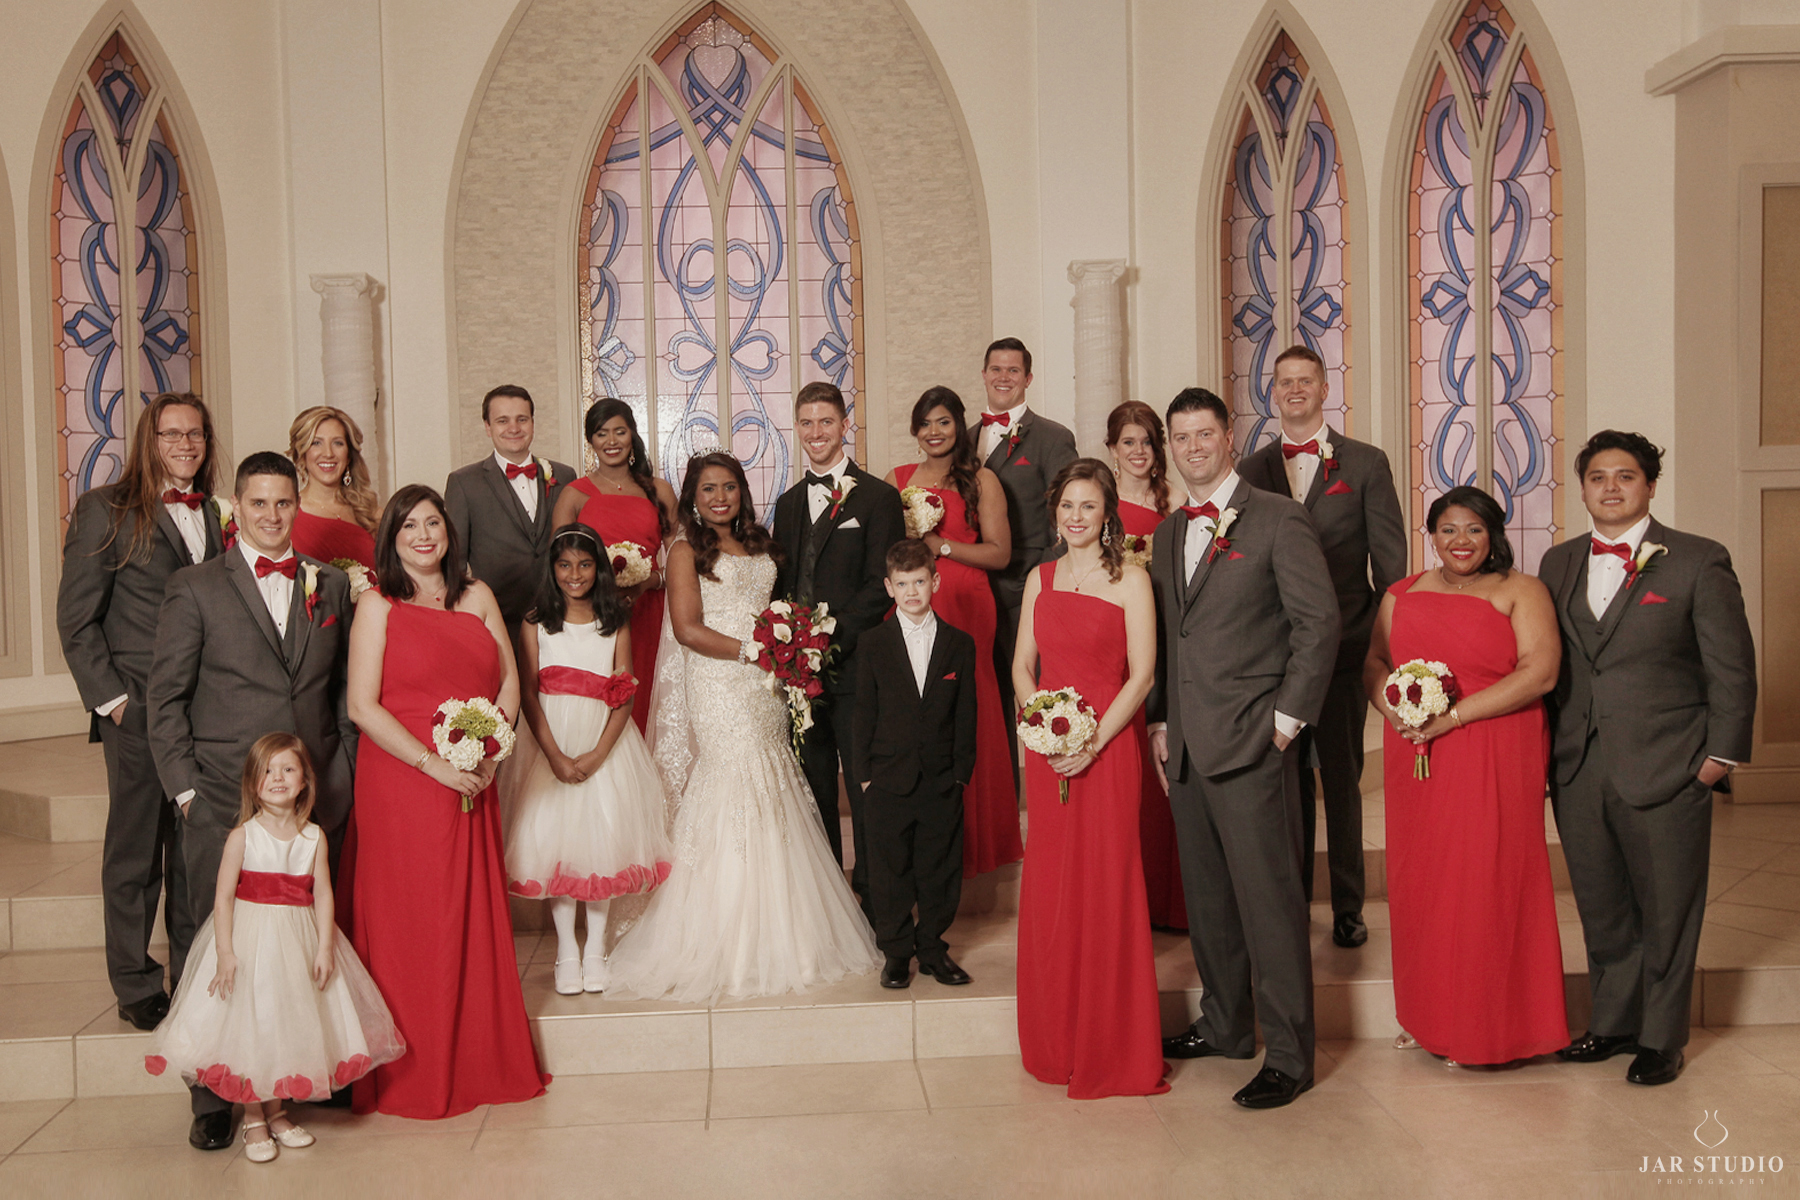 21-red-gray-ivory-wedding-color-trend-elegant-orlando-photographer-jarstudio.JPG